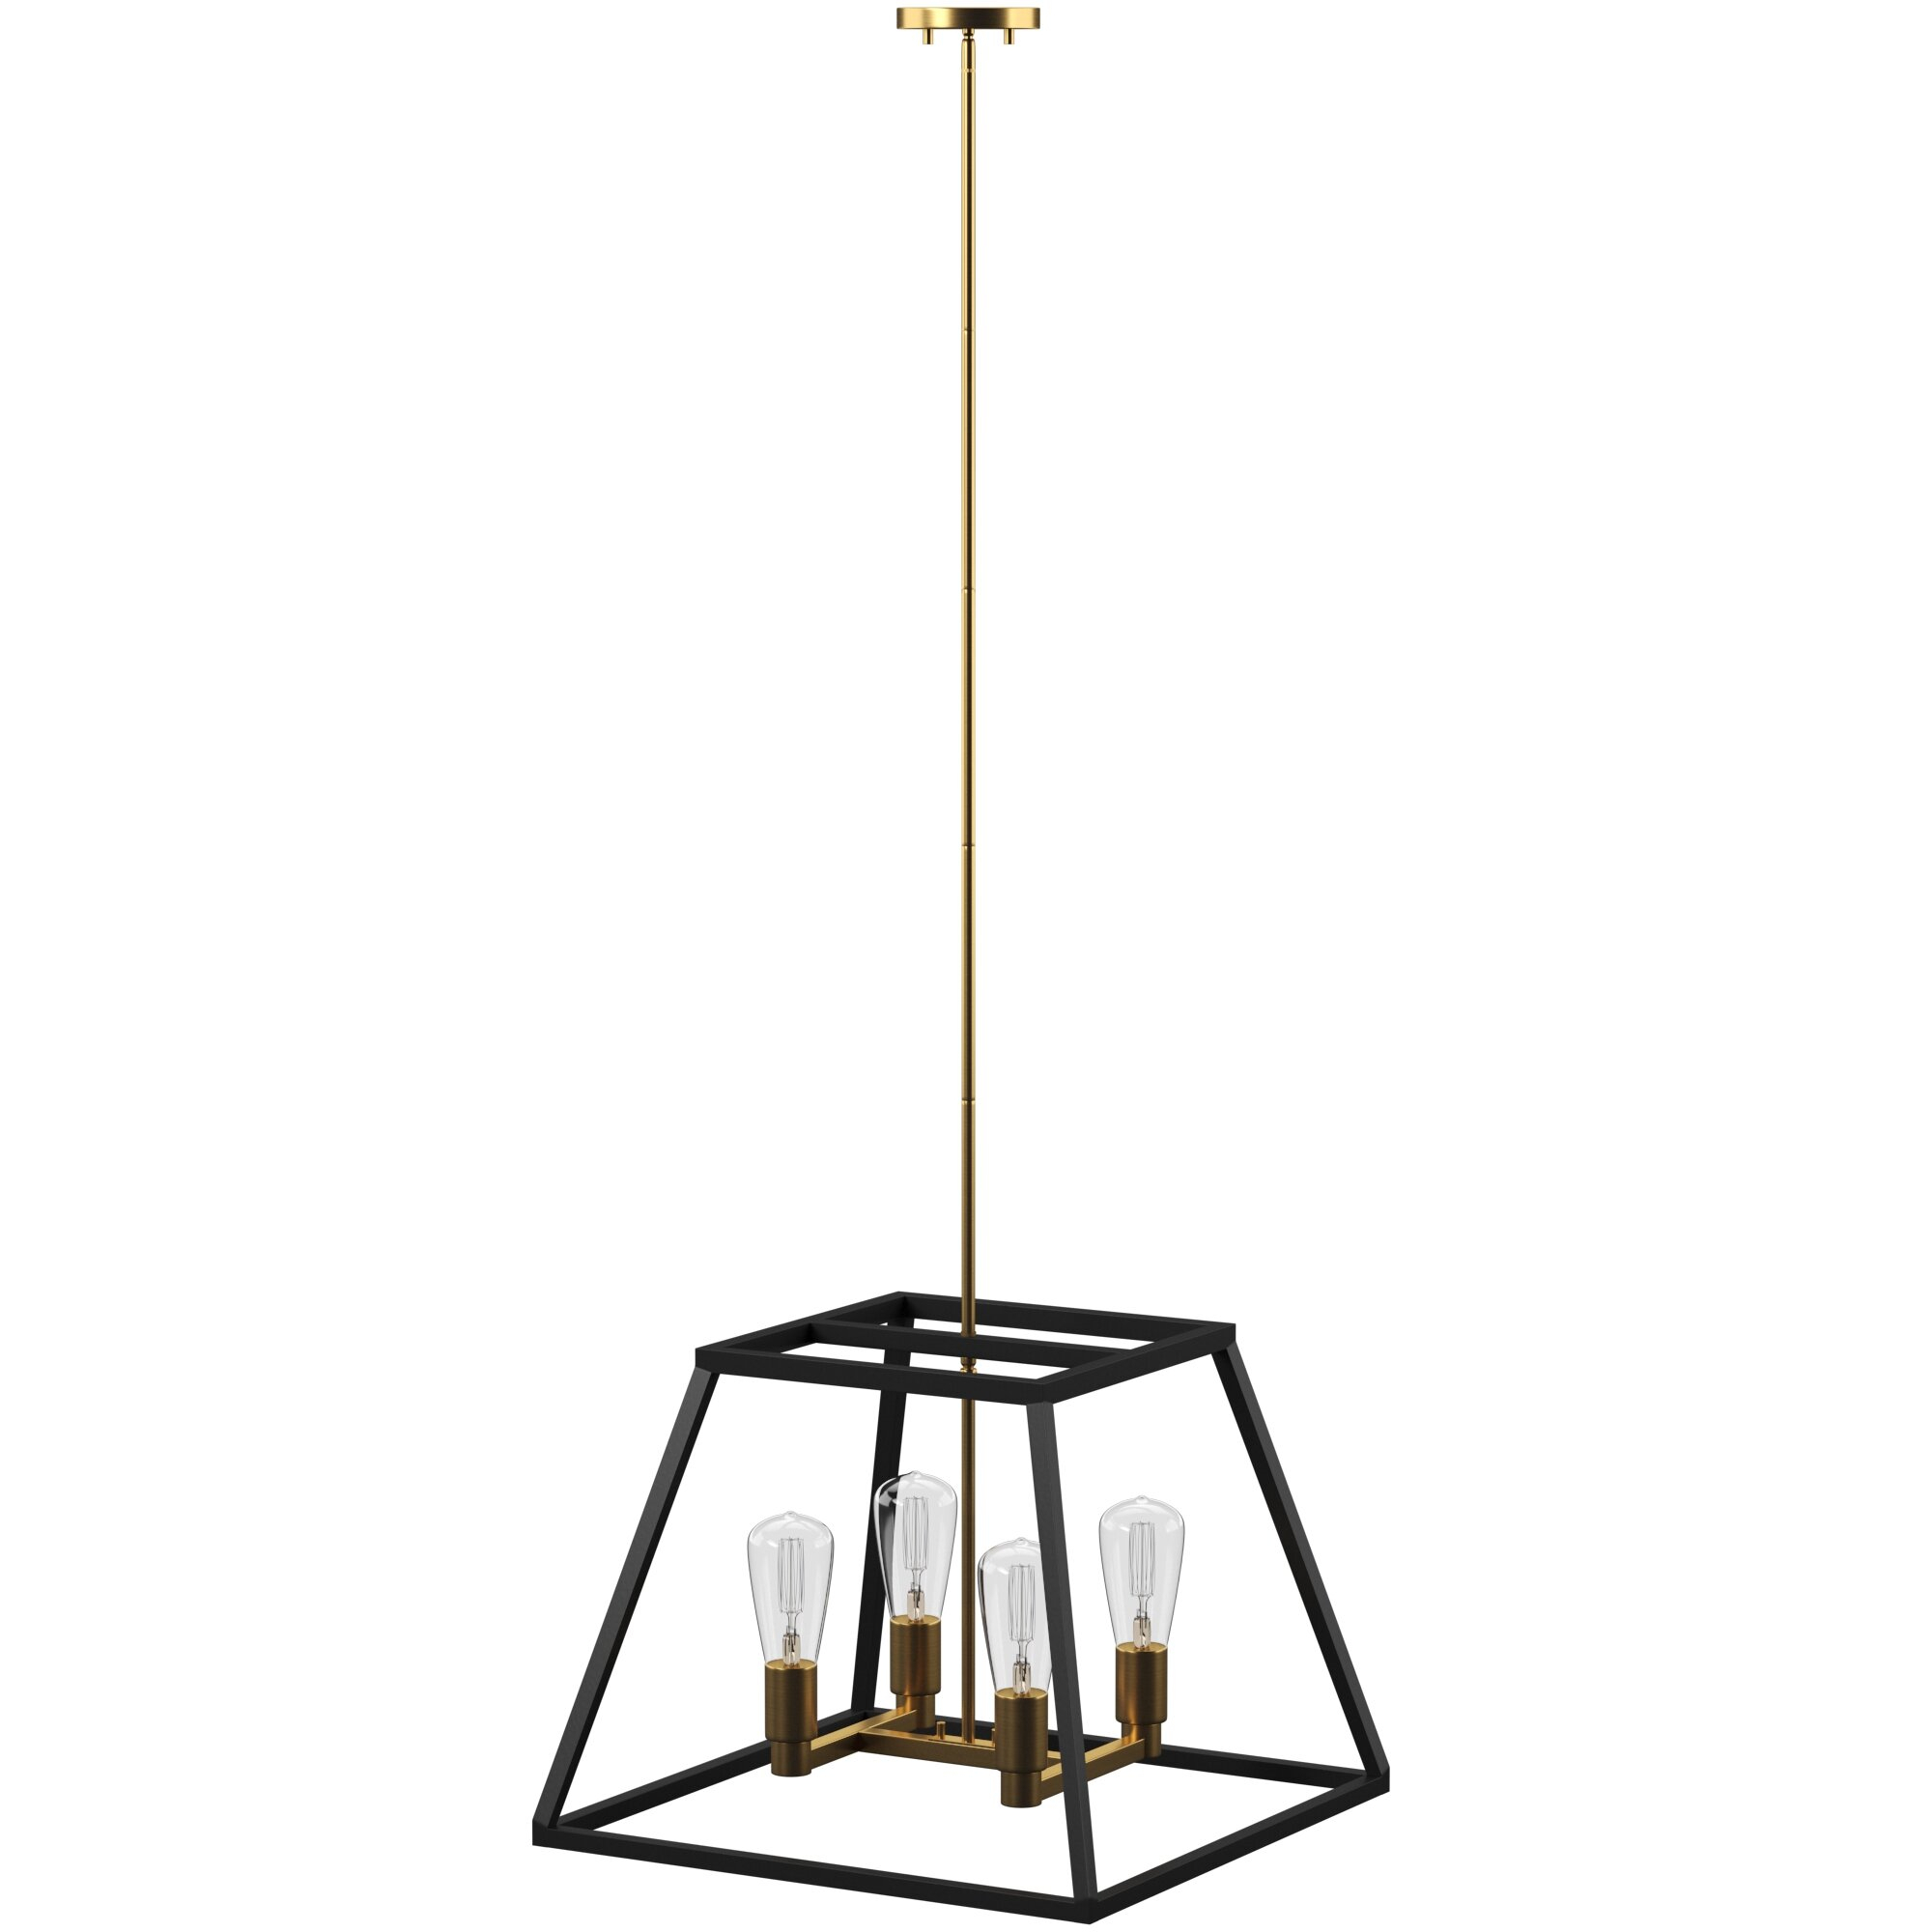 Shisler 4 Light Square/rectangle Chandelier With Regard To Janette 5 Light Wagon Wheel Chandeliers (View 15 of 30)